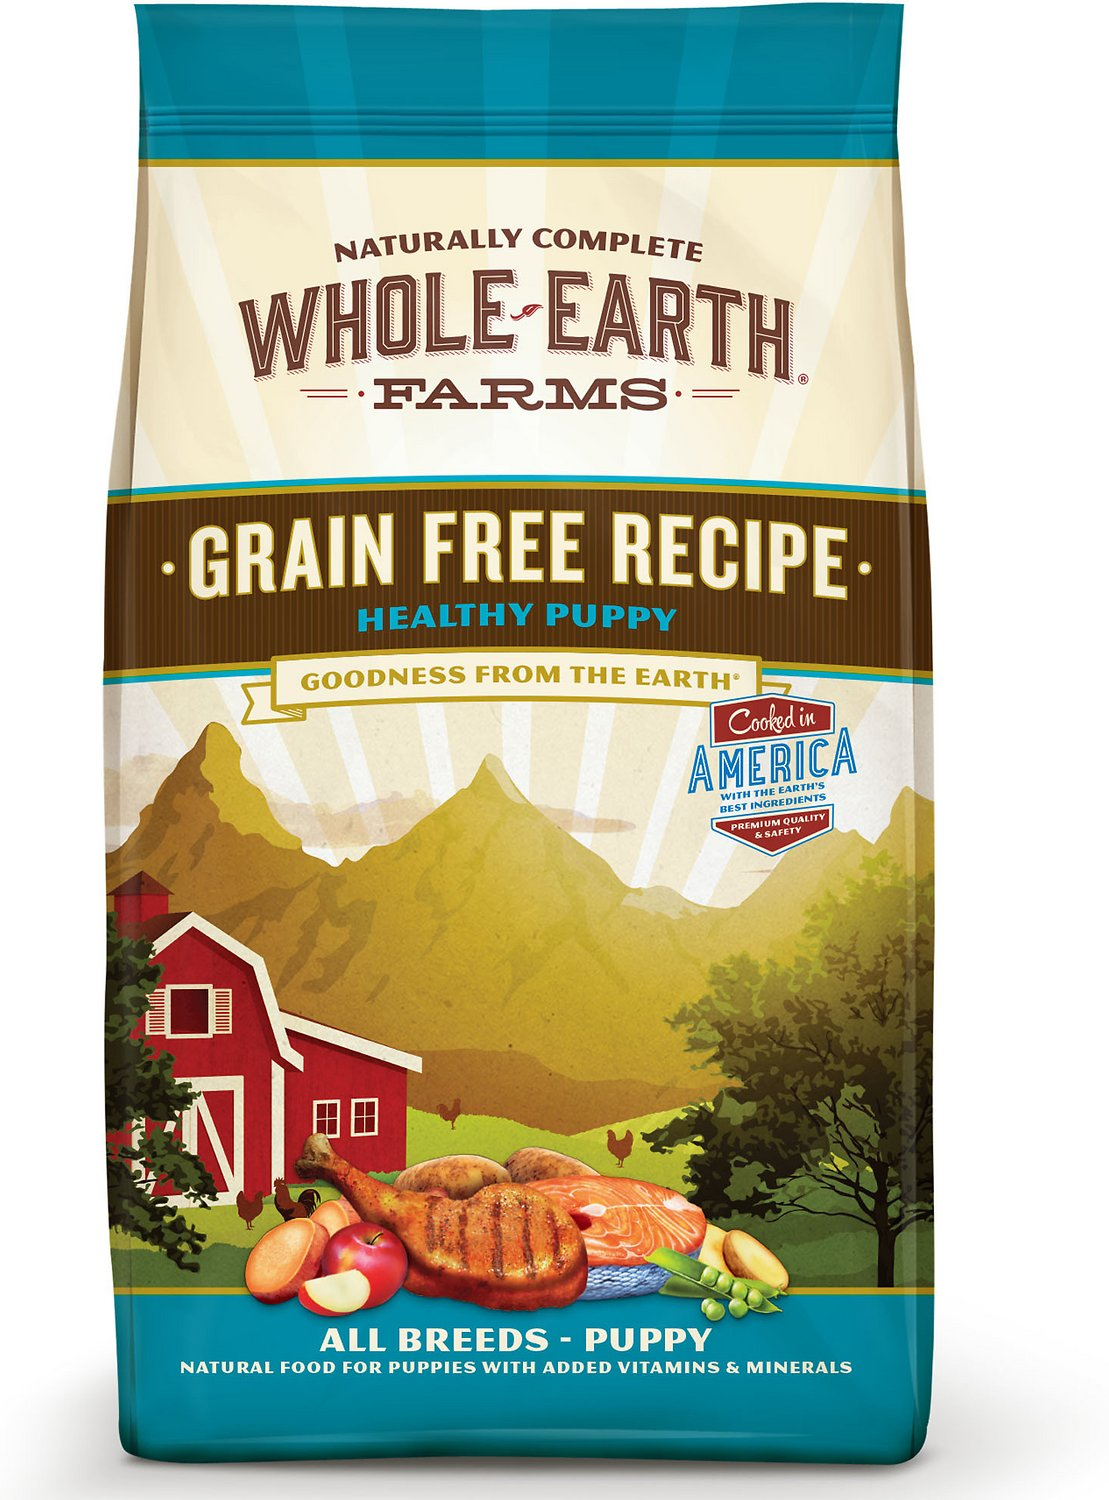 Whole earth farms healthy puppy recipe grain free dry dog food 25 video forumfinder Choice Image